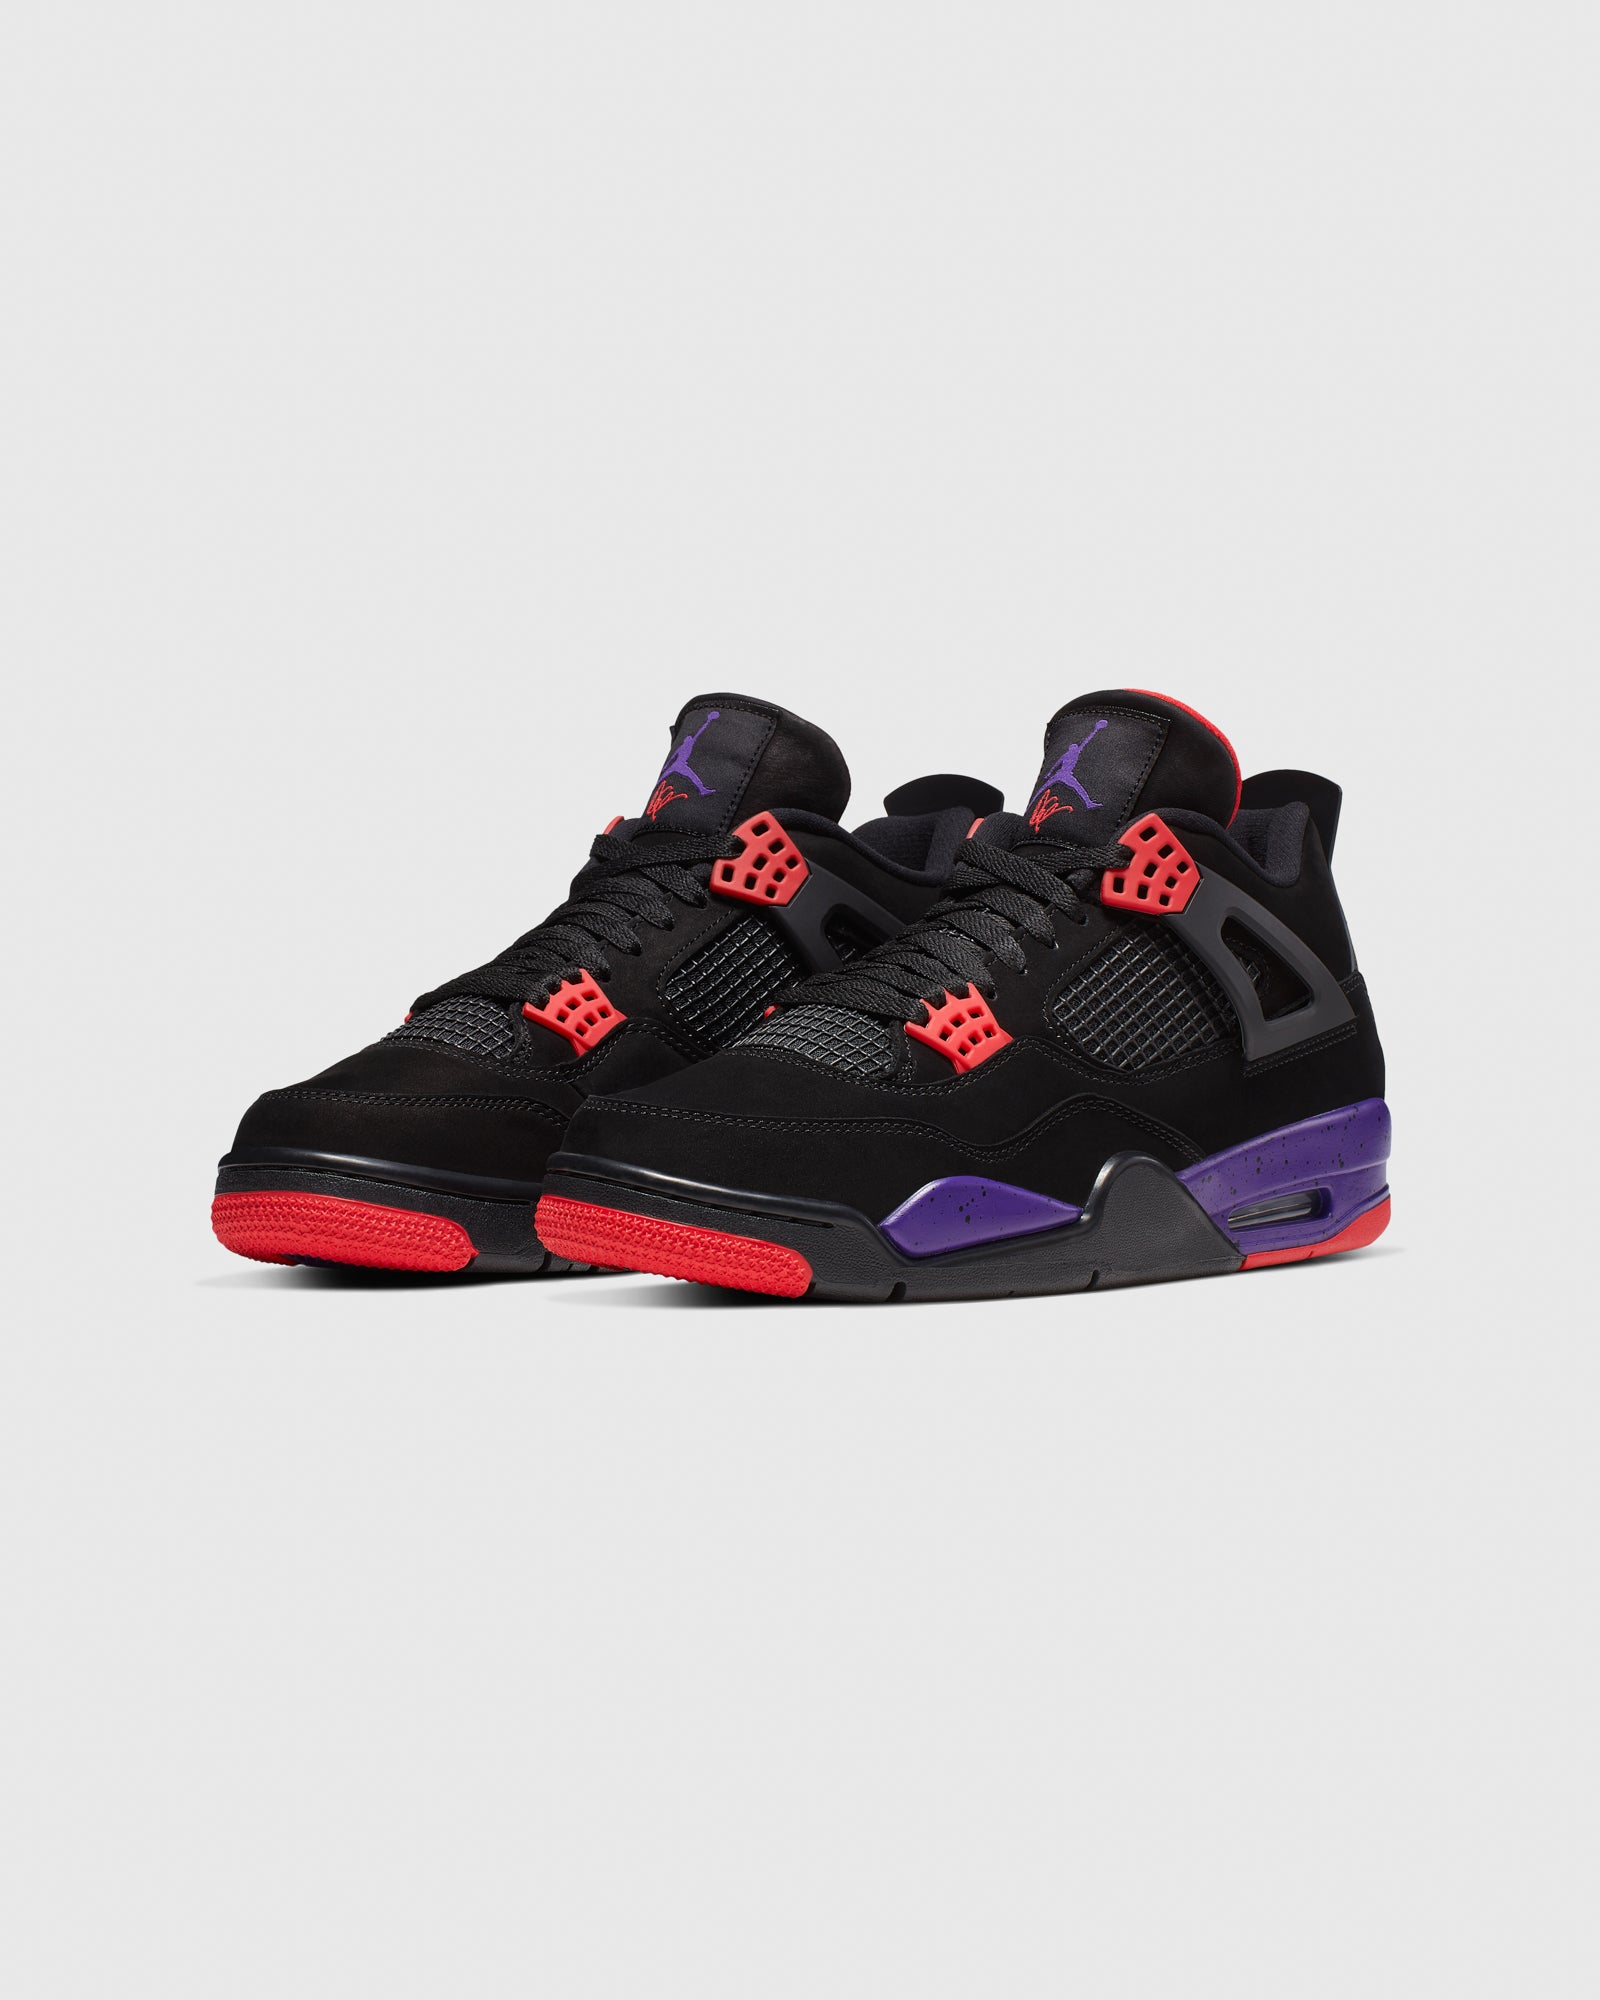 AIR JORDAN IV - BLACK/COURT PURPLE IMAGE #3